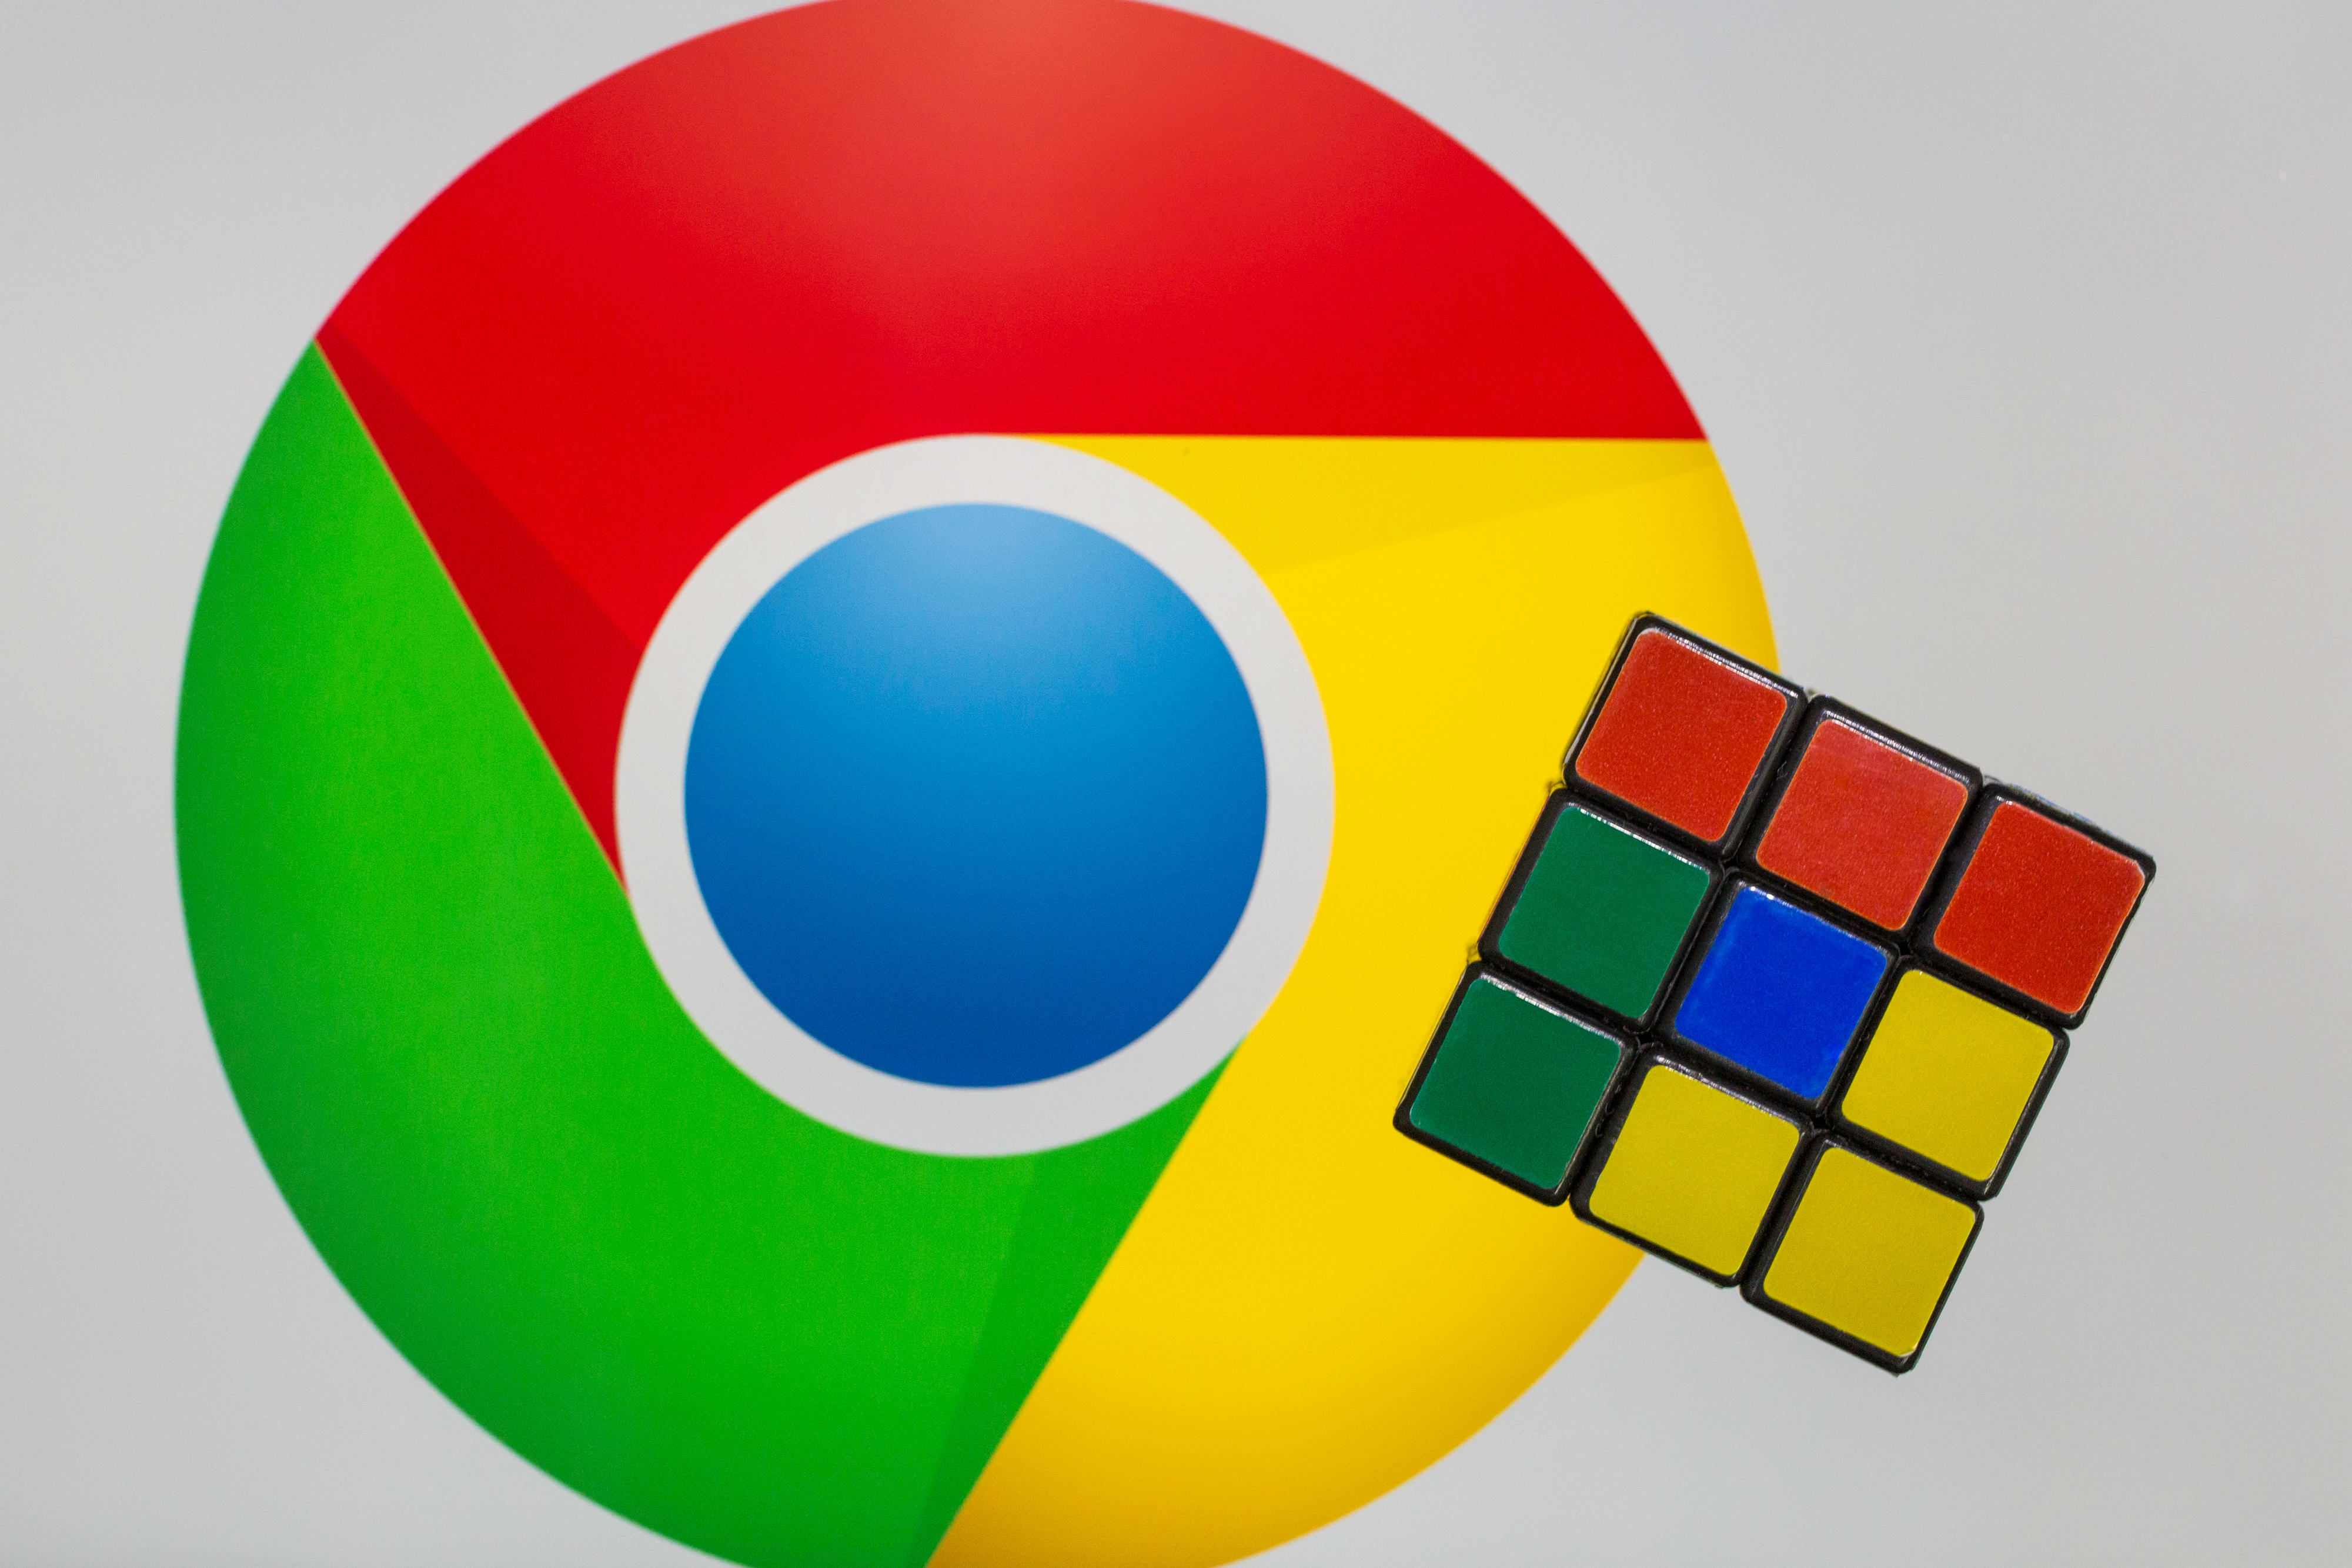 Google wants a smarter web. That could open new security risks.